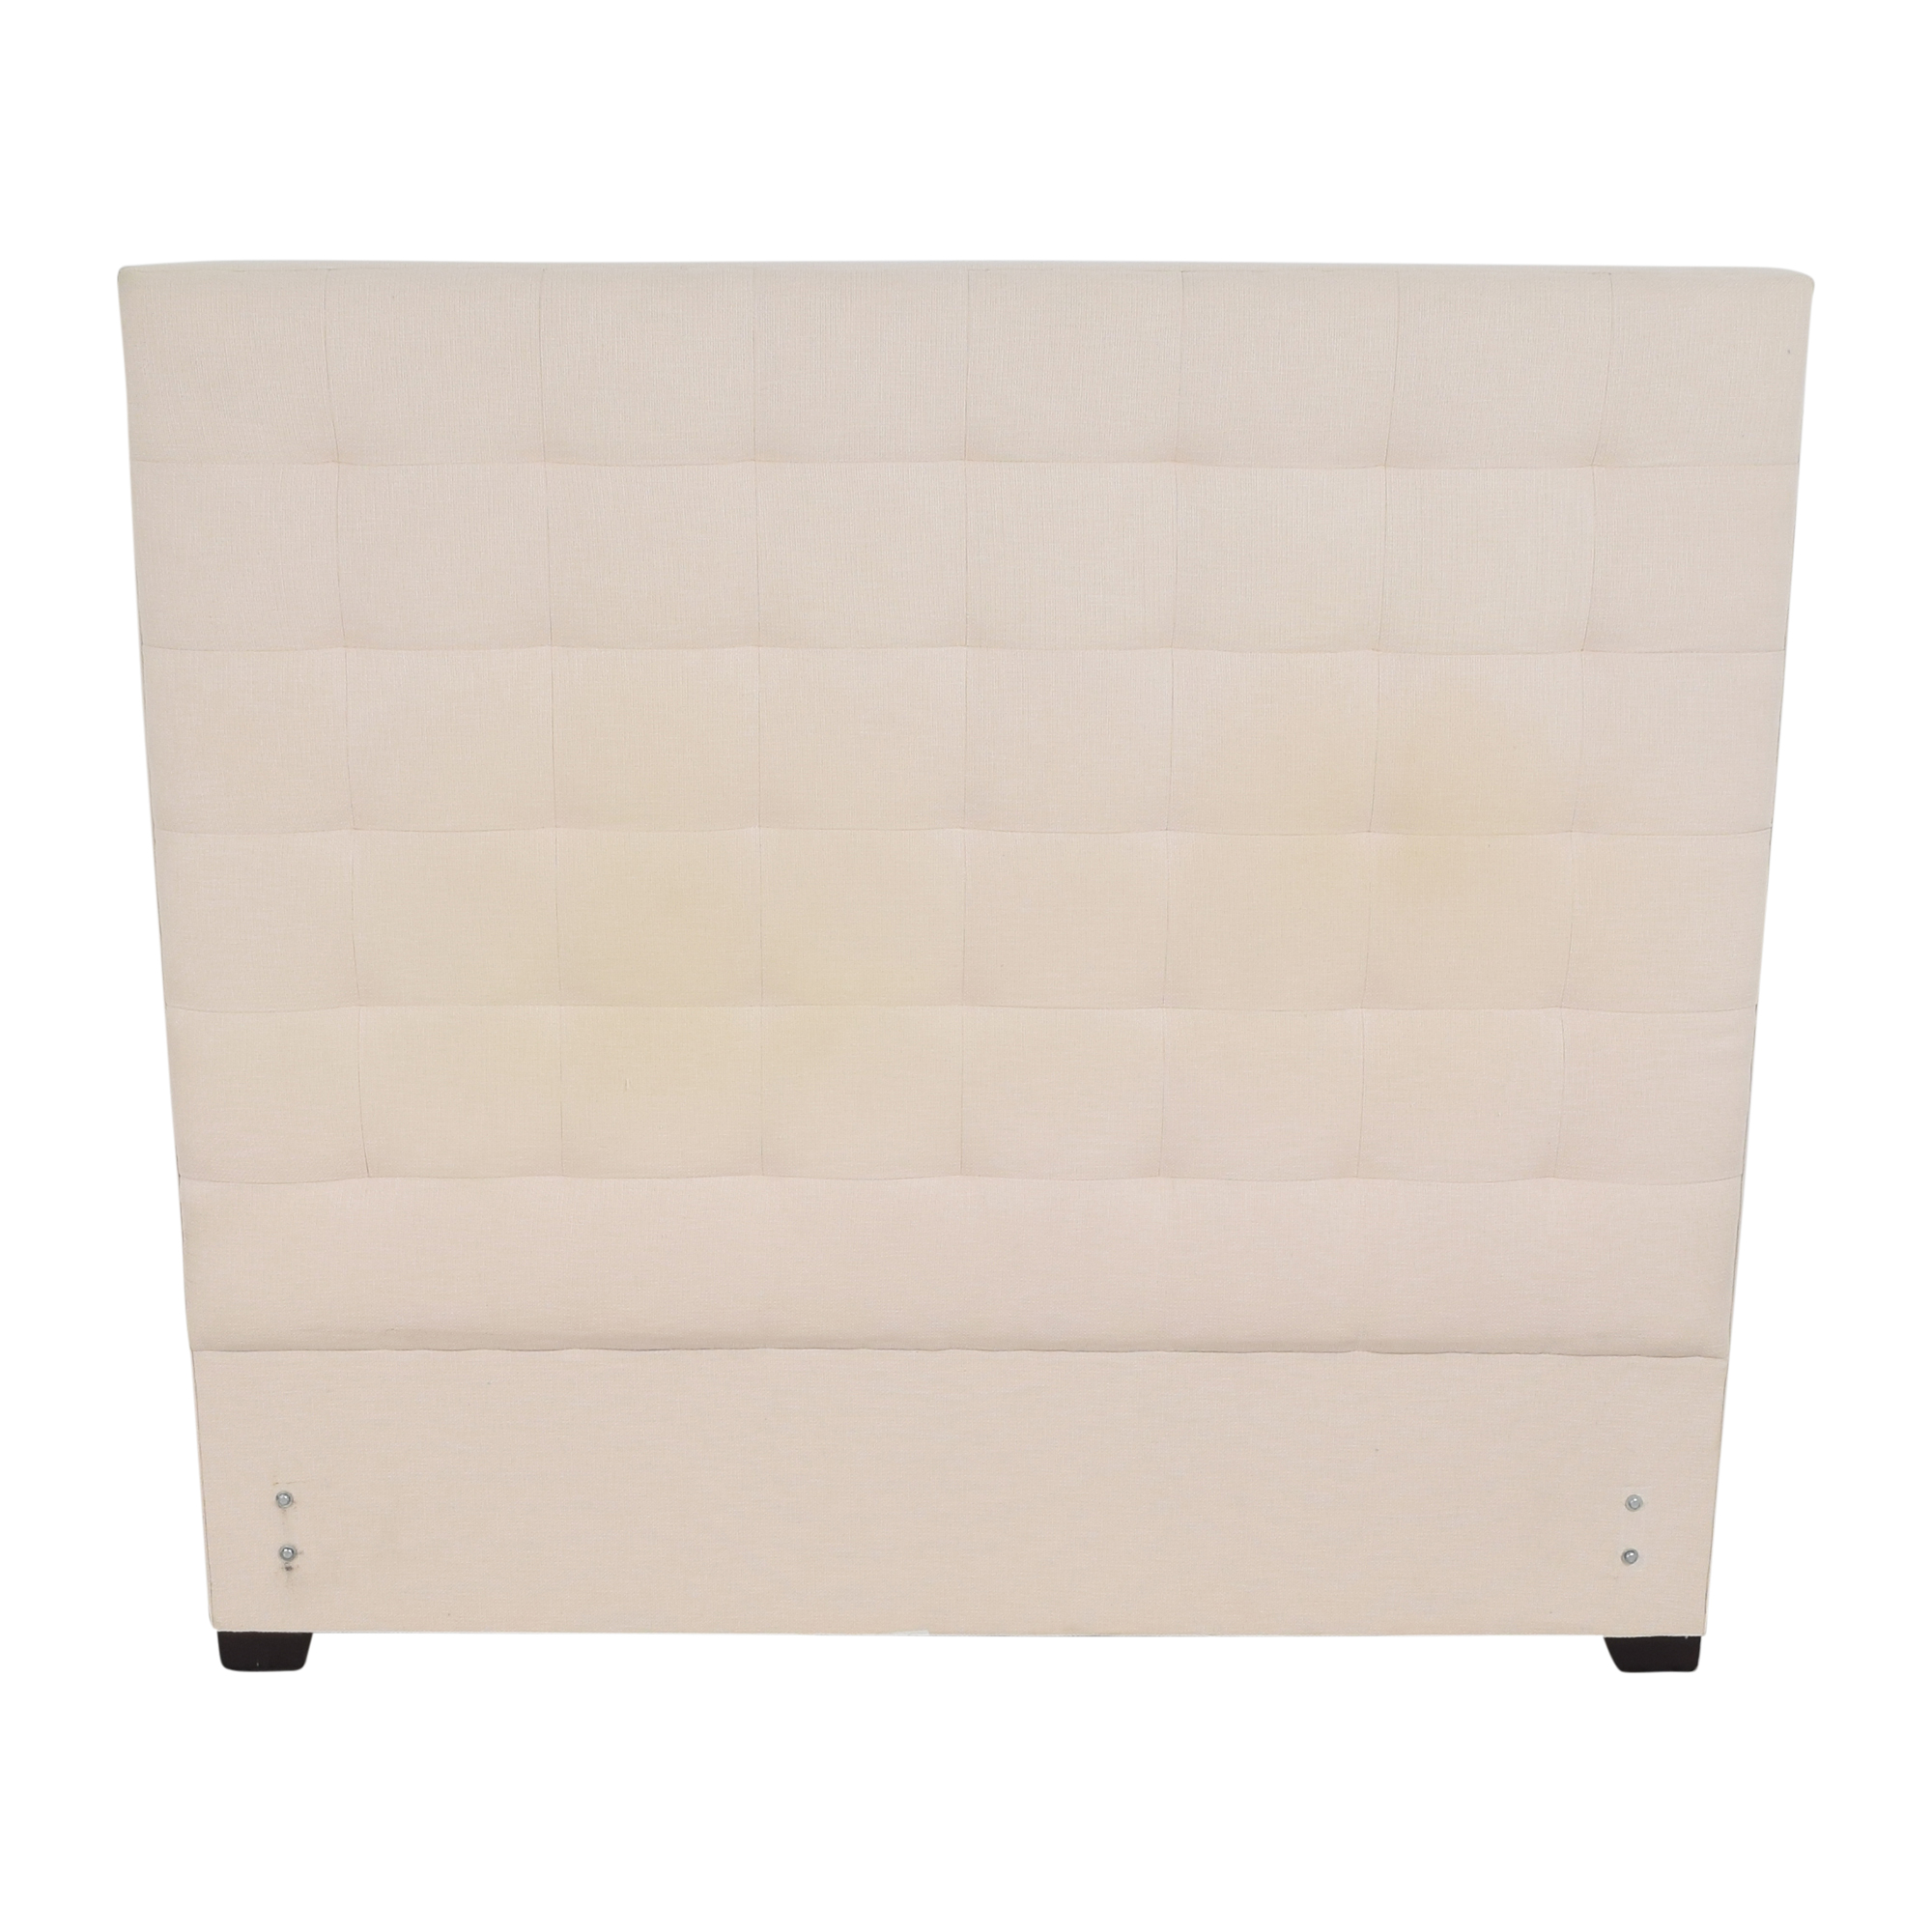 Bernhardt Bernhardt Tufted Queen Headboard second hand